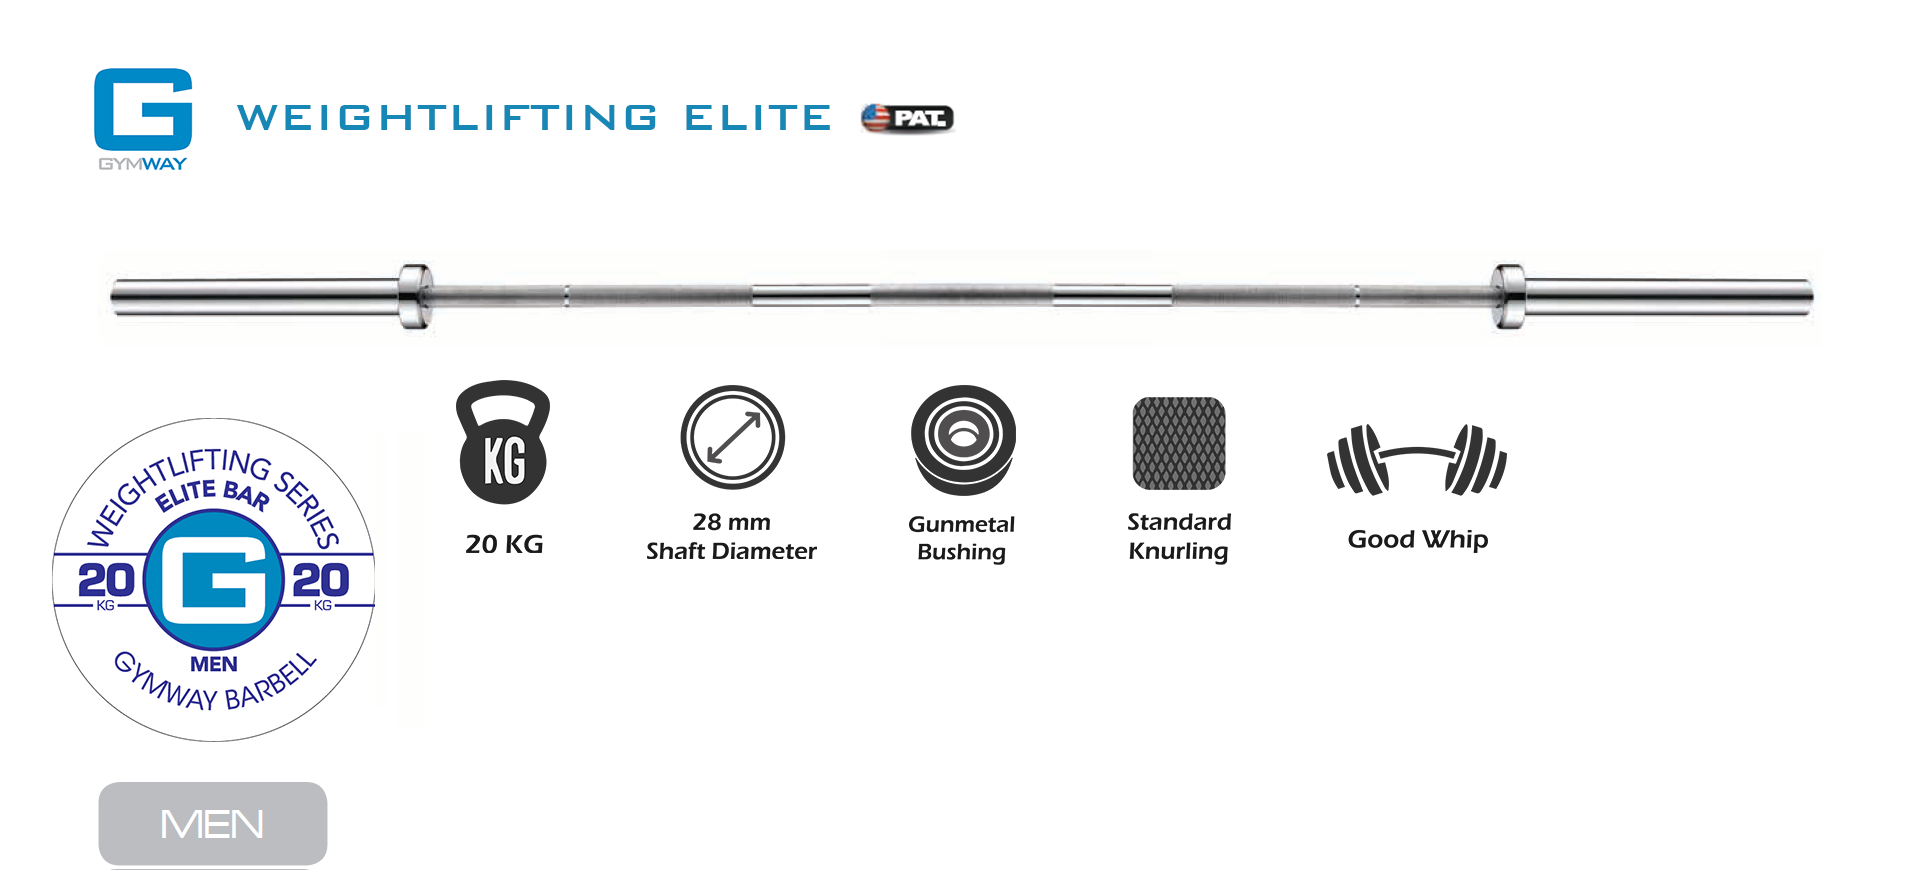 GYMWAY Elite Weightlifting Barbell Specs